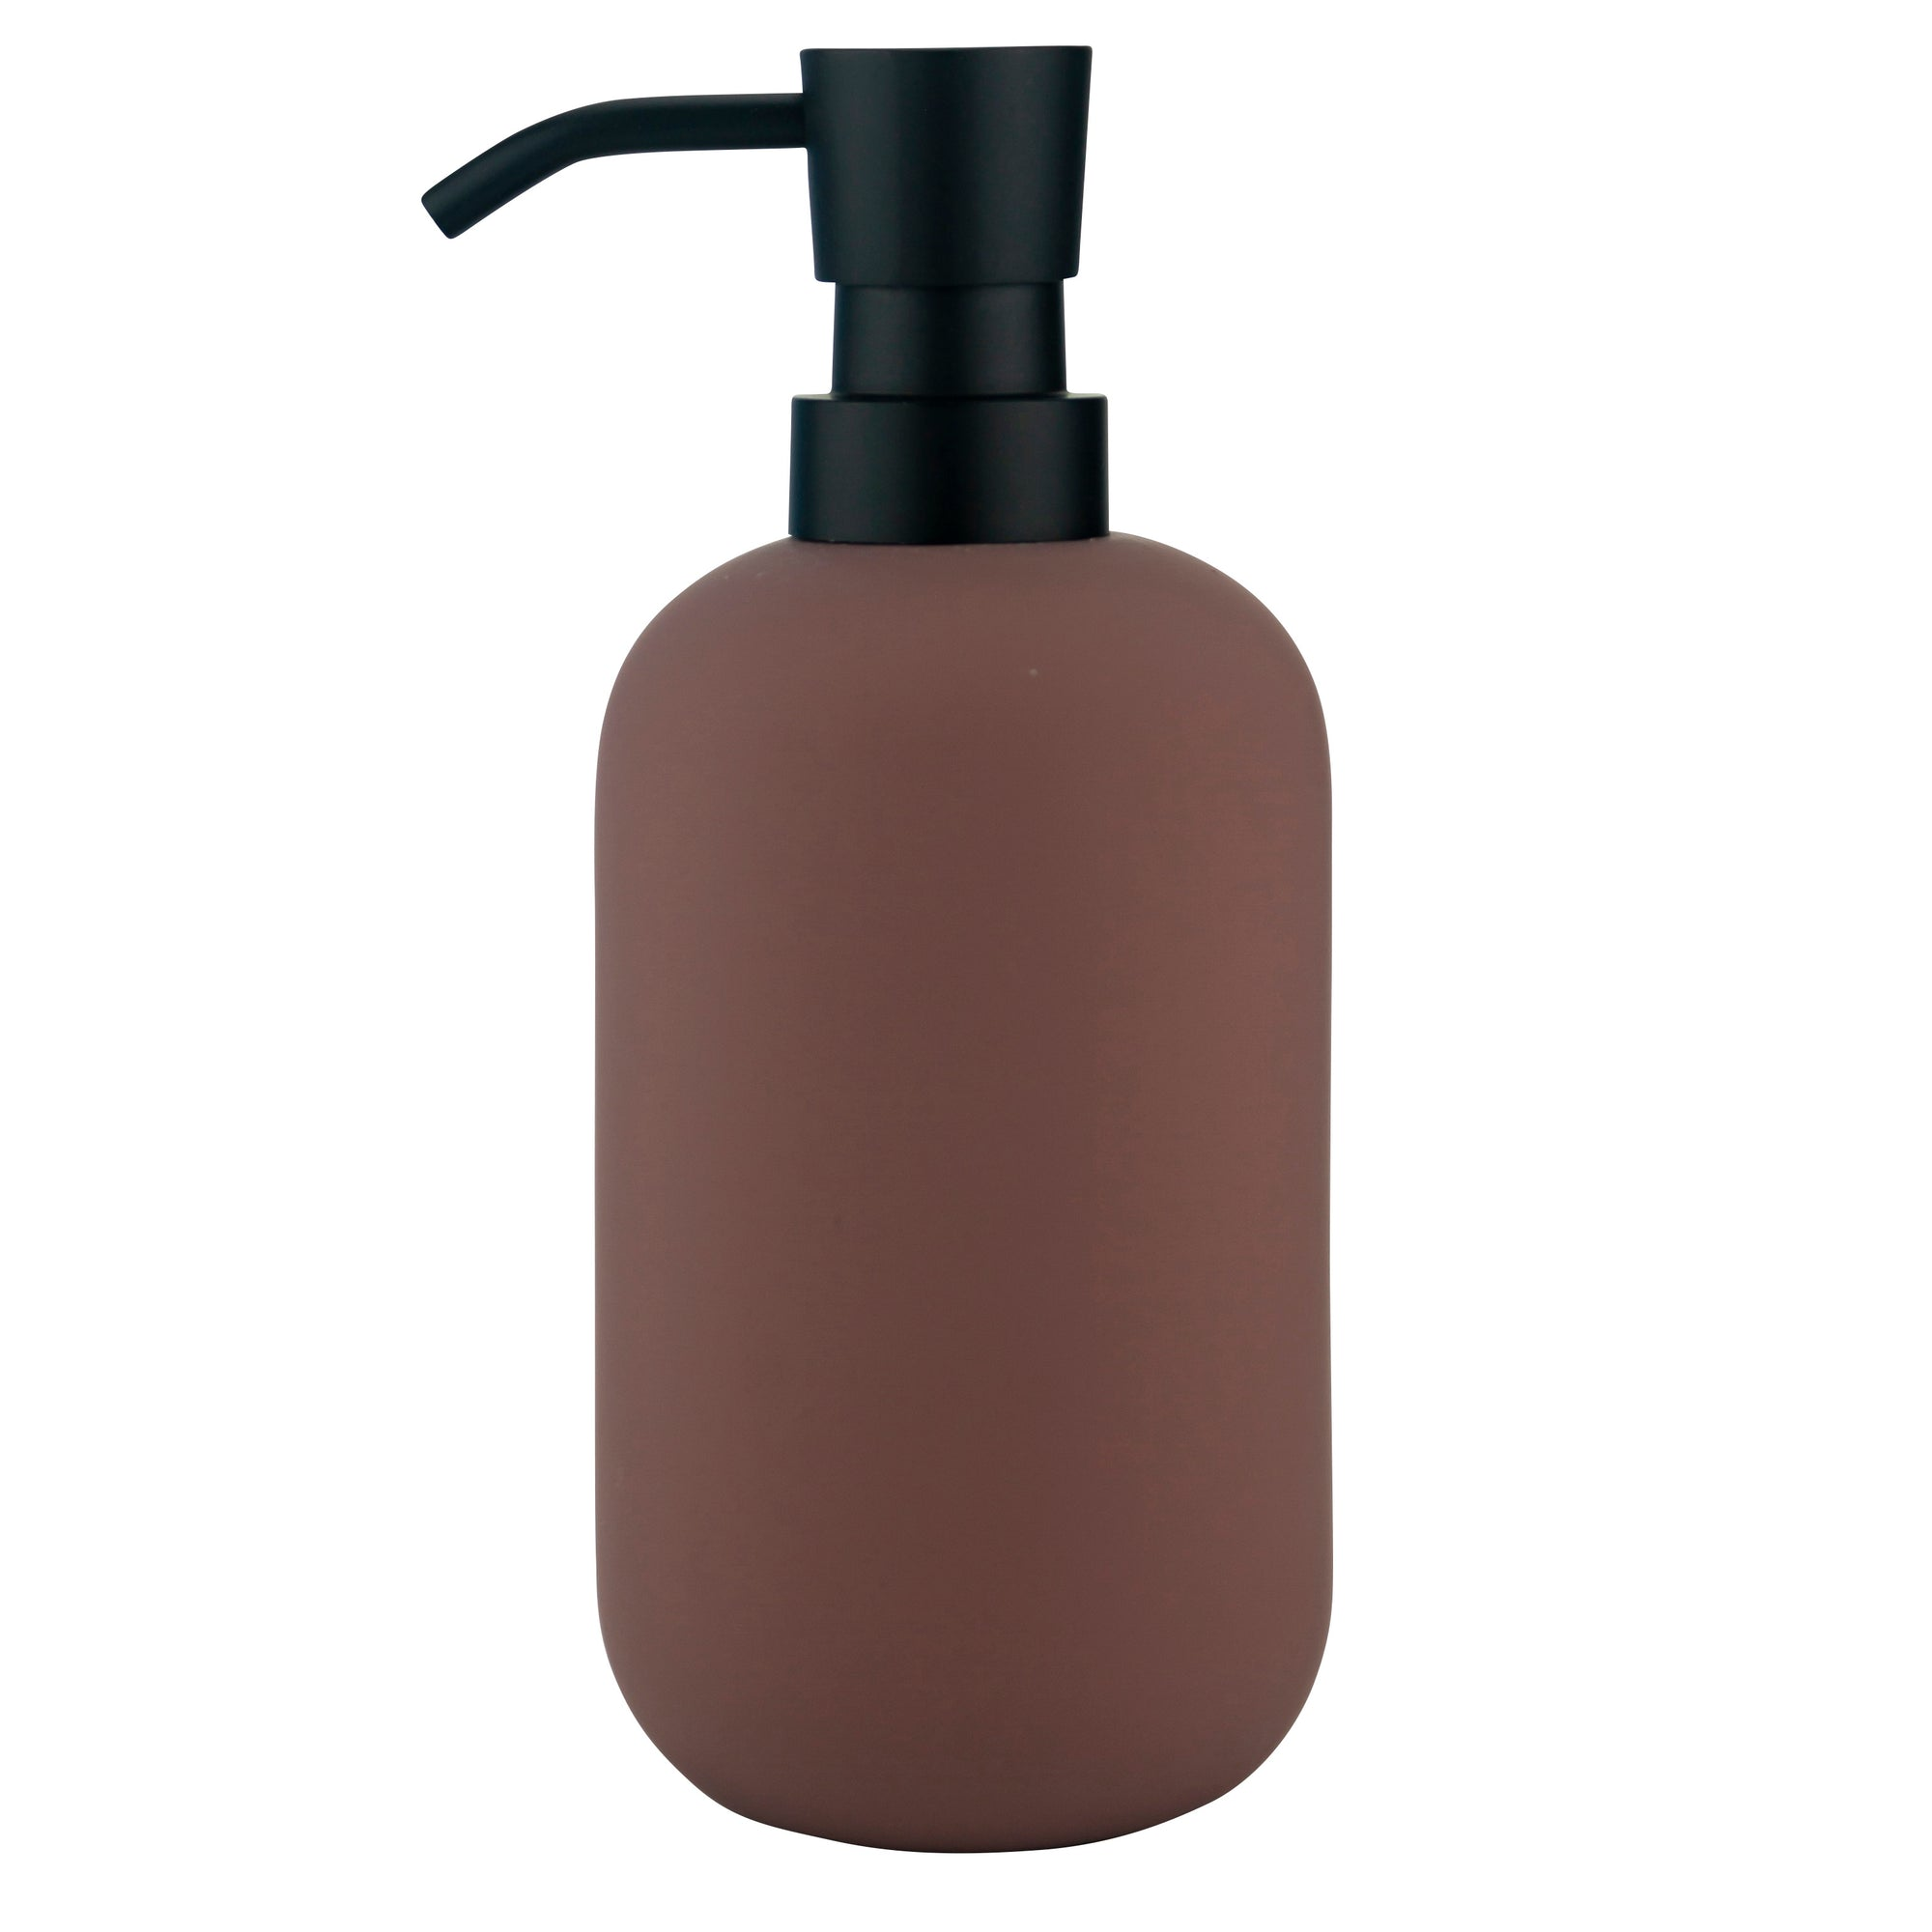 LOTUS Soap Dispenser- Mauve